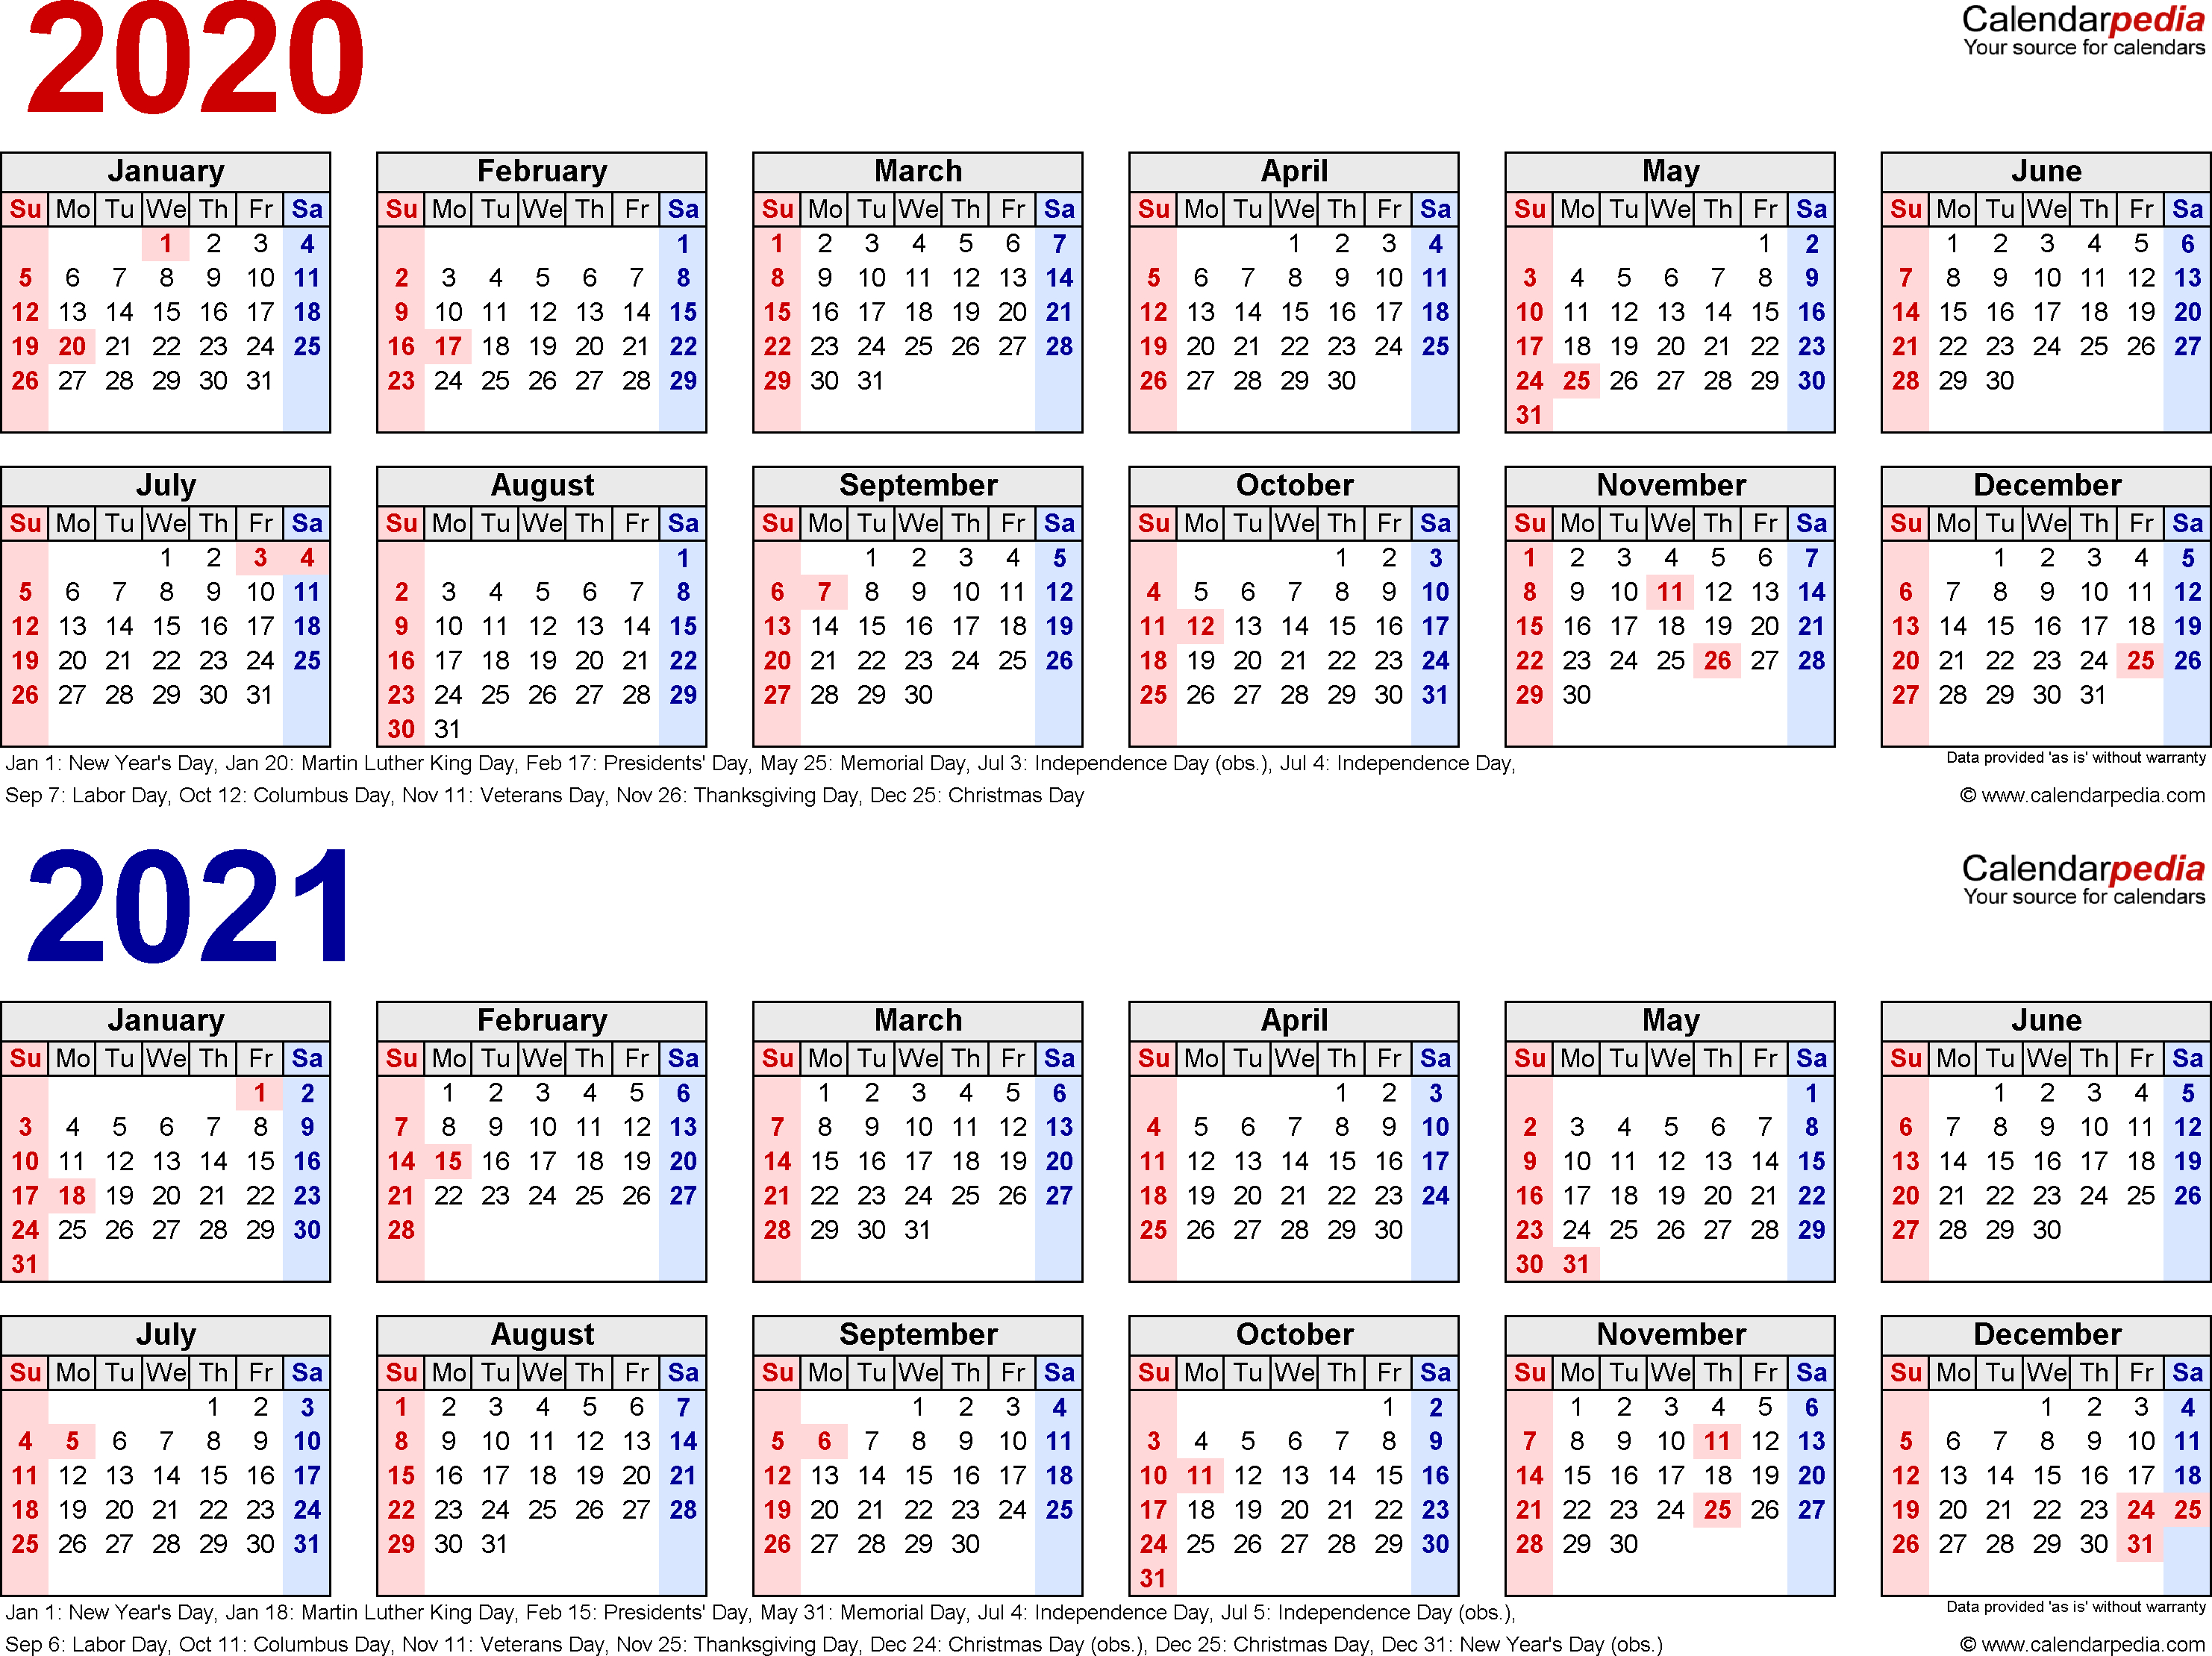 2020-2021 Calendar - Free Printable Two-Year Word Calendars